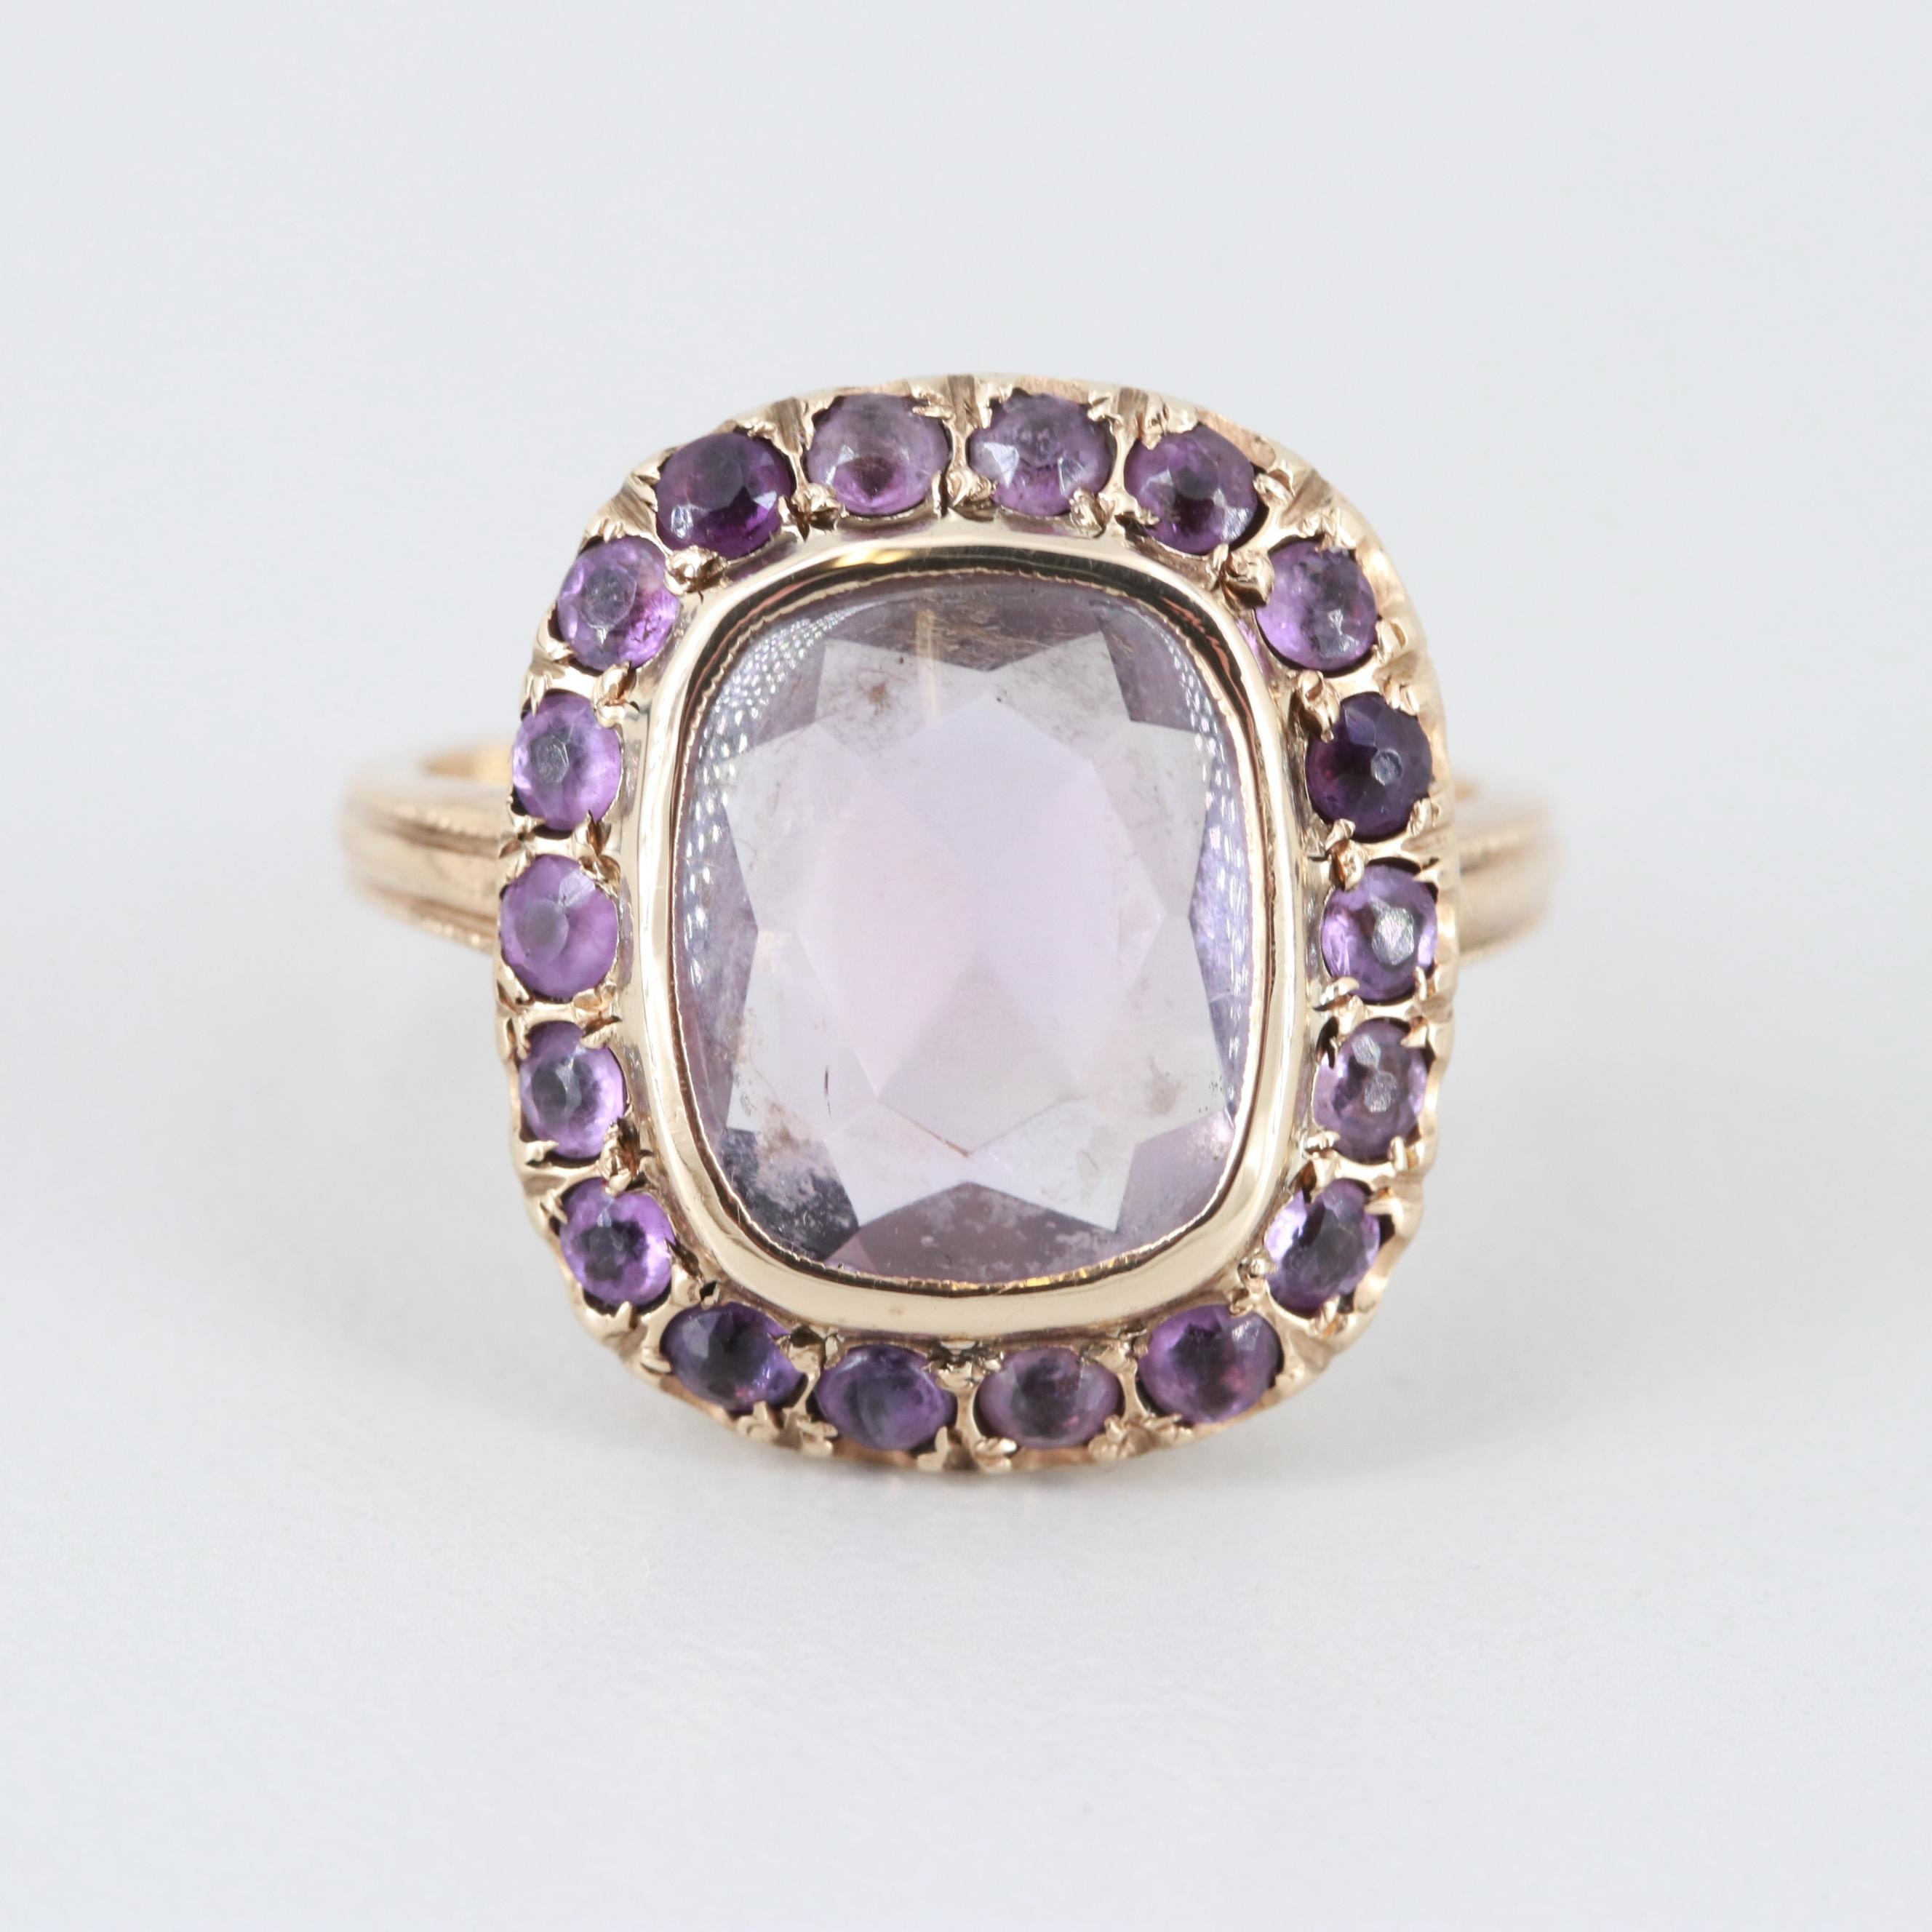 Vintage 10K Yellow Gold Amethyst Ring